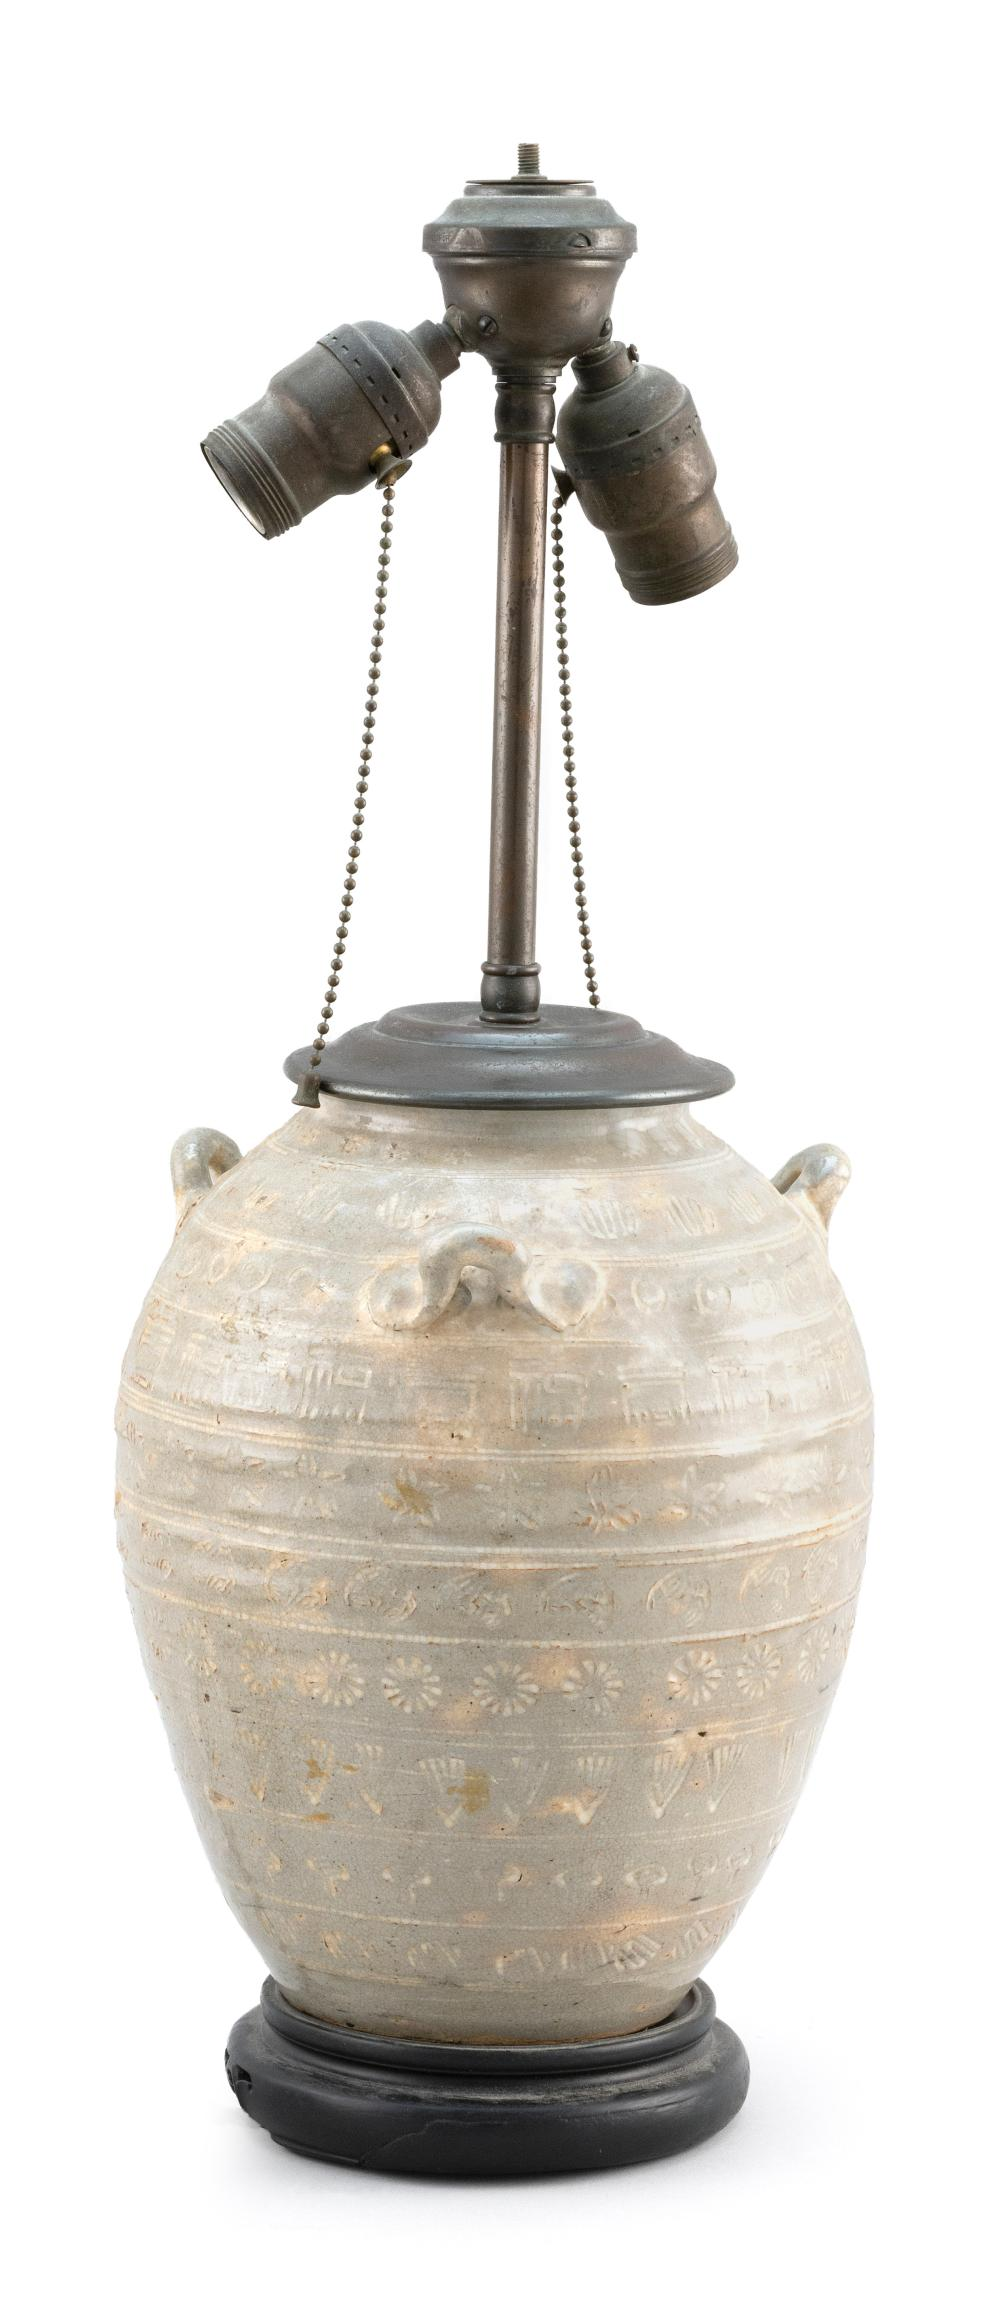 "KOREAN PUCHONG-STYLE POTTERY JAR Ovoid, with three applied handles and banded design. Height 10"". Mounted as a table lamp."